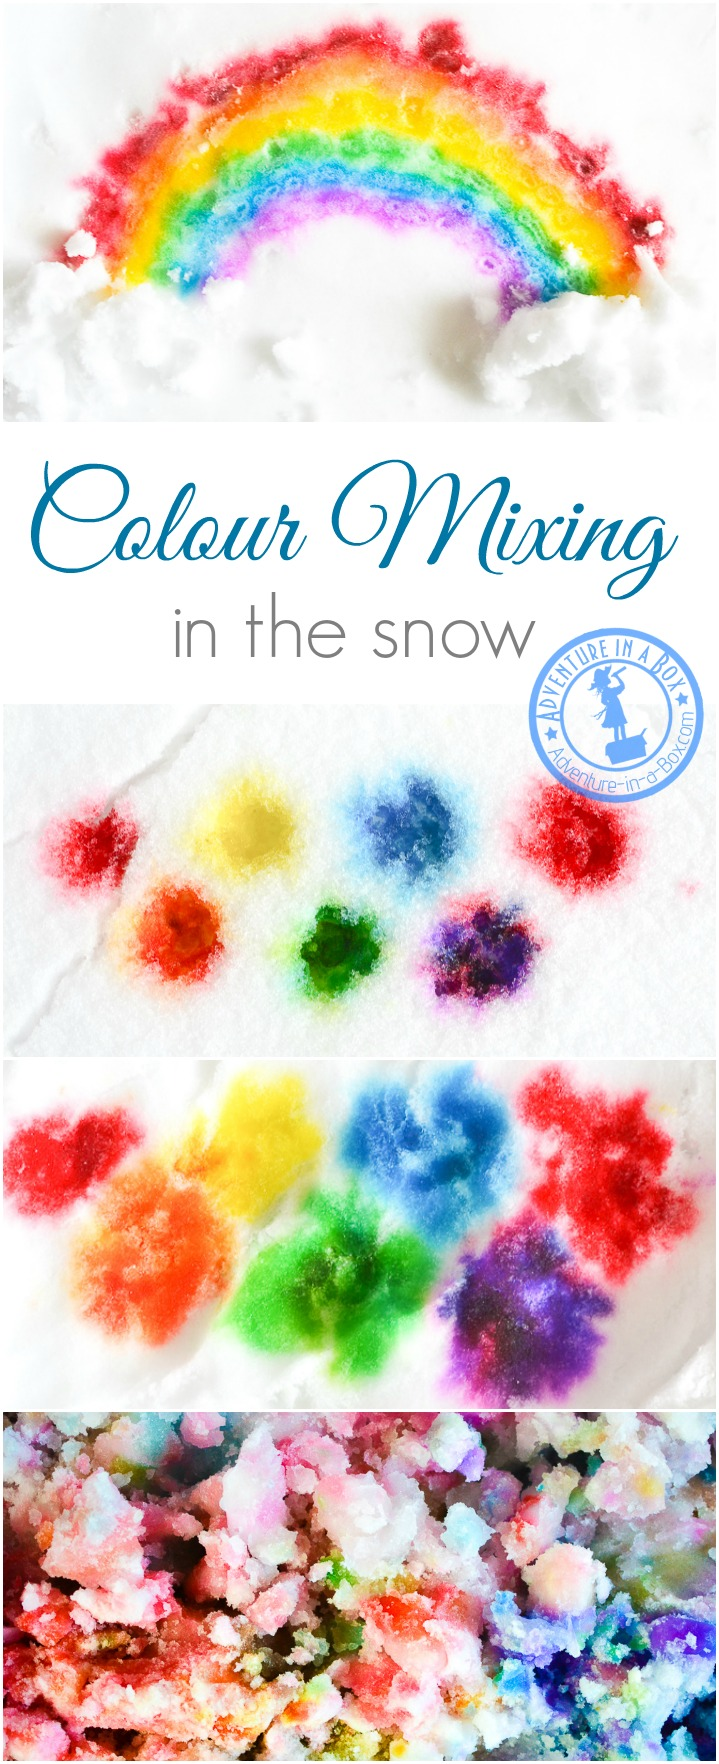 When it's too cold to play with snow outside, bring it inside and open a colour mixing lab with paints in the snow. Fun winter art project for kids!